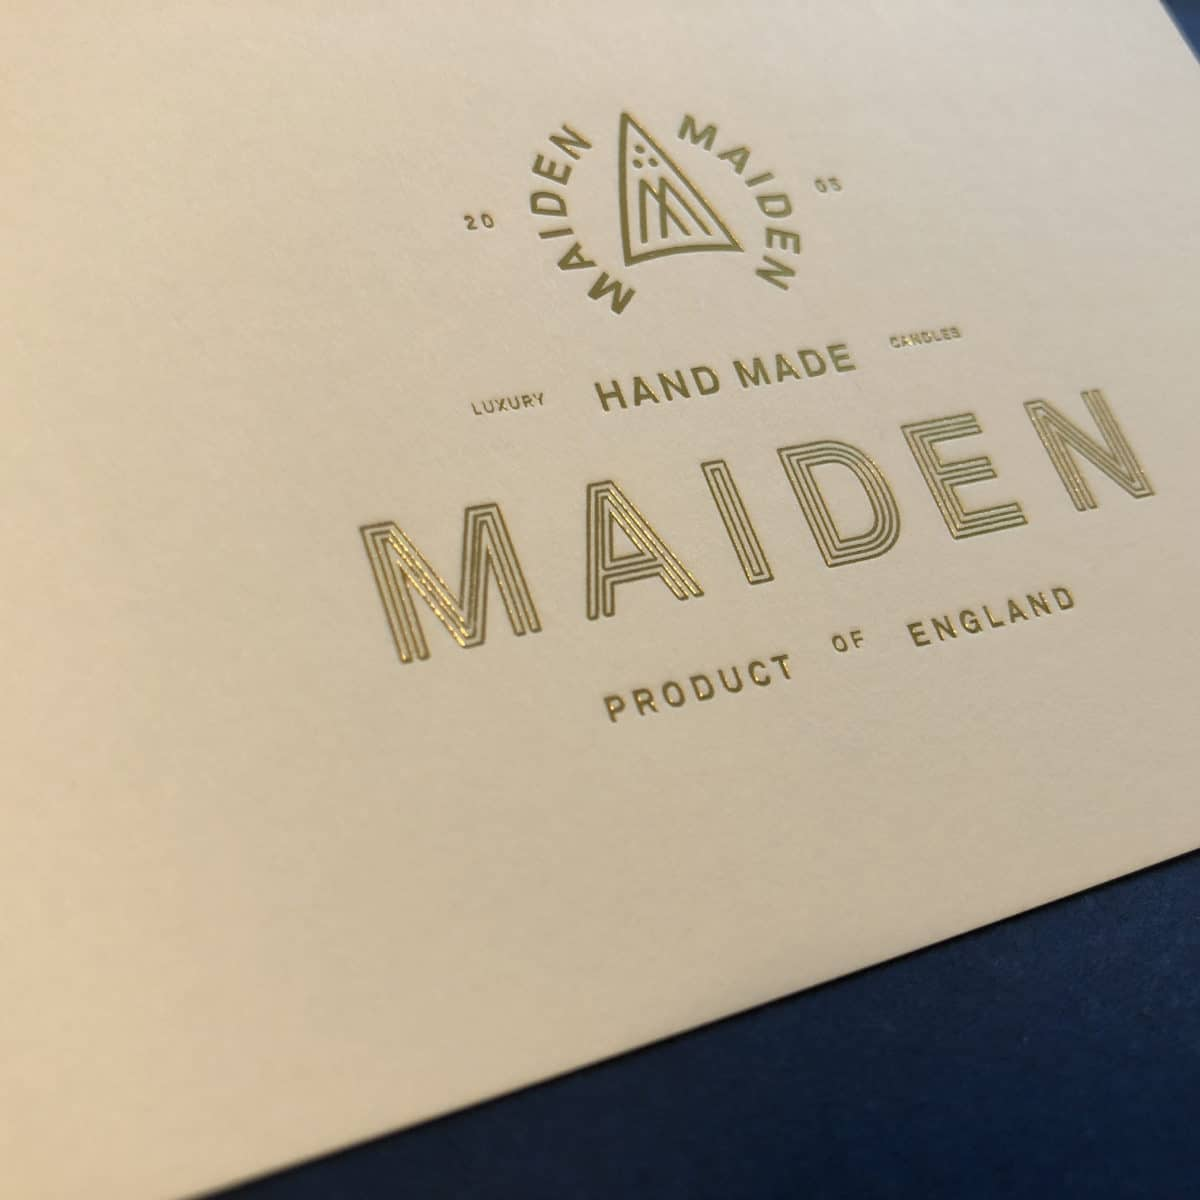 New Work — Coming Soon.MAIDEN.#logo #Brand #Branding #Design #Graphicdesign #Luxury #pattern #packagingdesign #packaging #British #NewRelease #Style #contemporary #handmade #london #dorset #graphicdesigner #graphicdesign #designagency #brandingagency #experience #candles.Printed by @dayfoldprint on @gfsmithpapers Mohawk